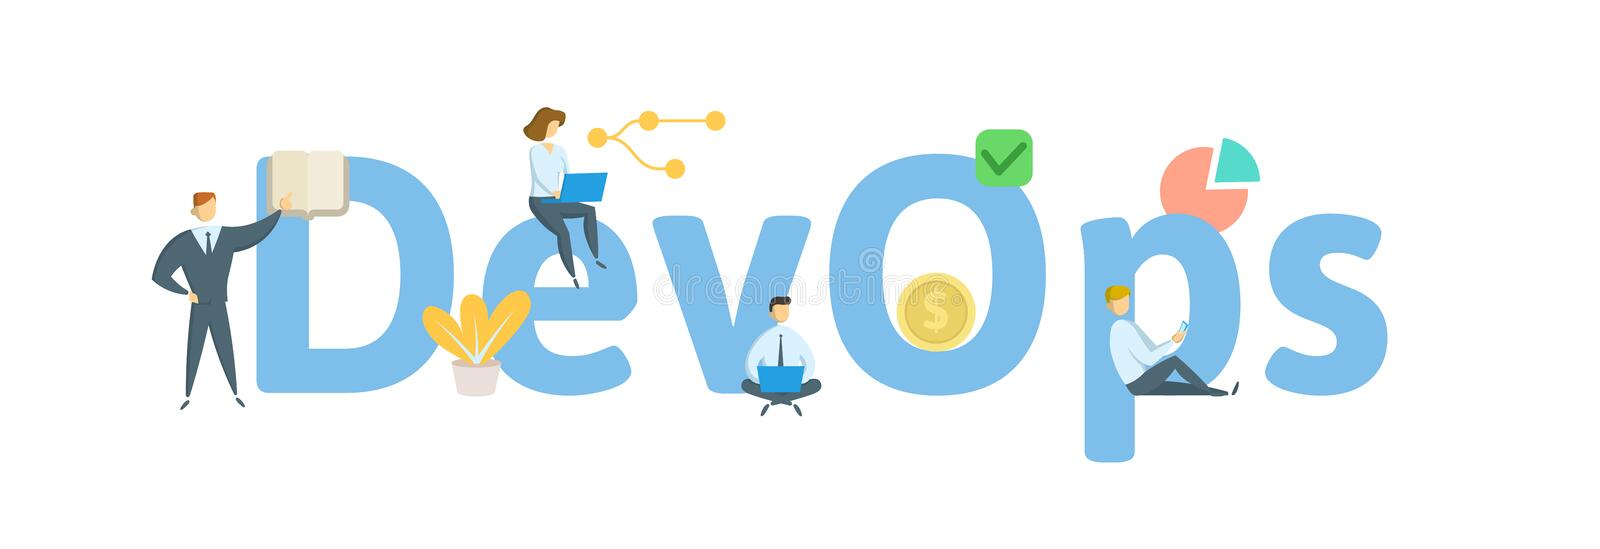 DevOps, Develoment and Optrations. Concept with people, letters and icons. Flat vector illustration. Isolated on white. DevOps, Develoment and Optrations stock illustration